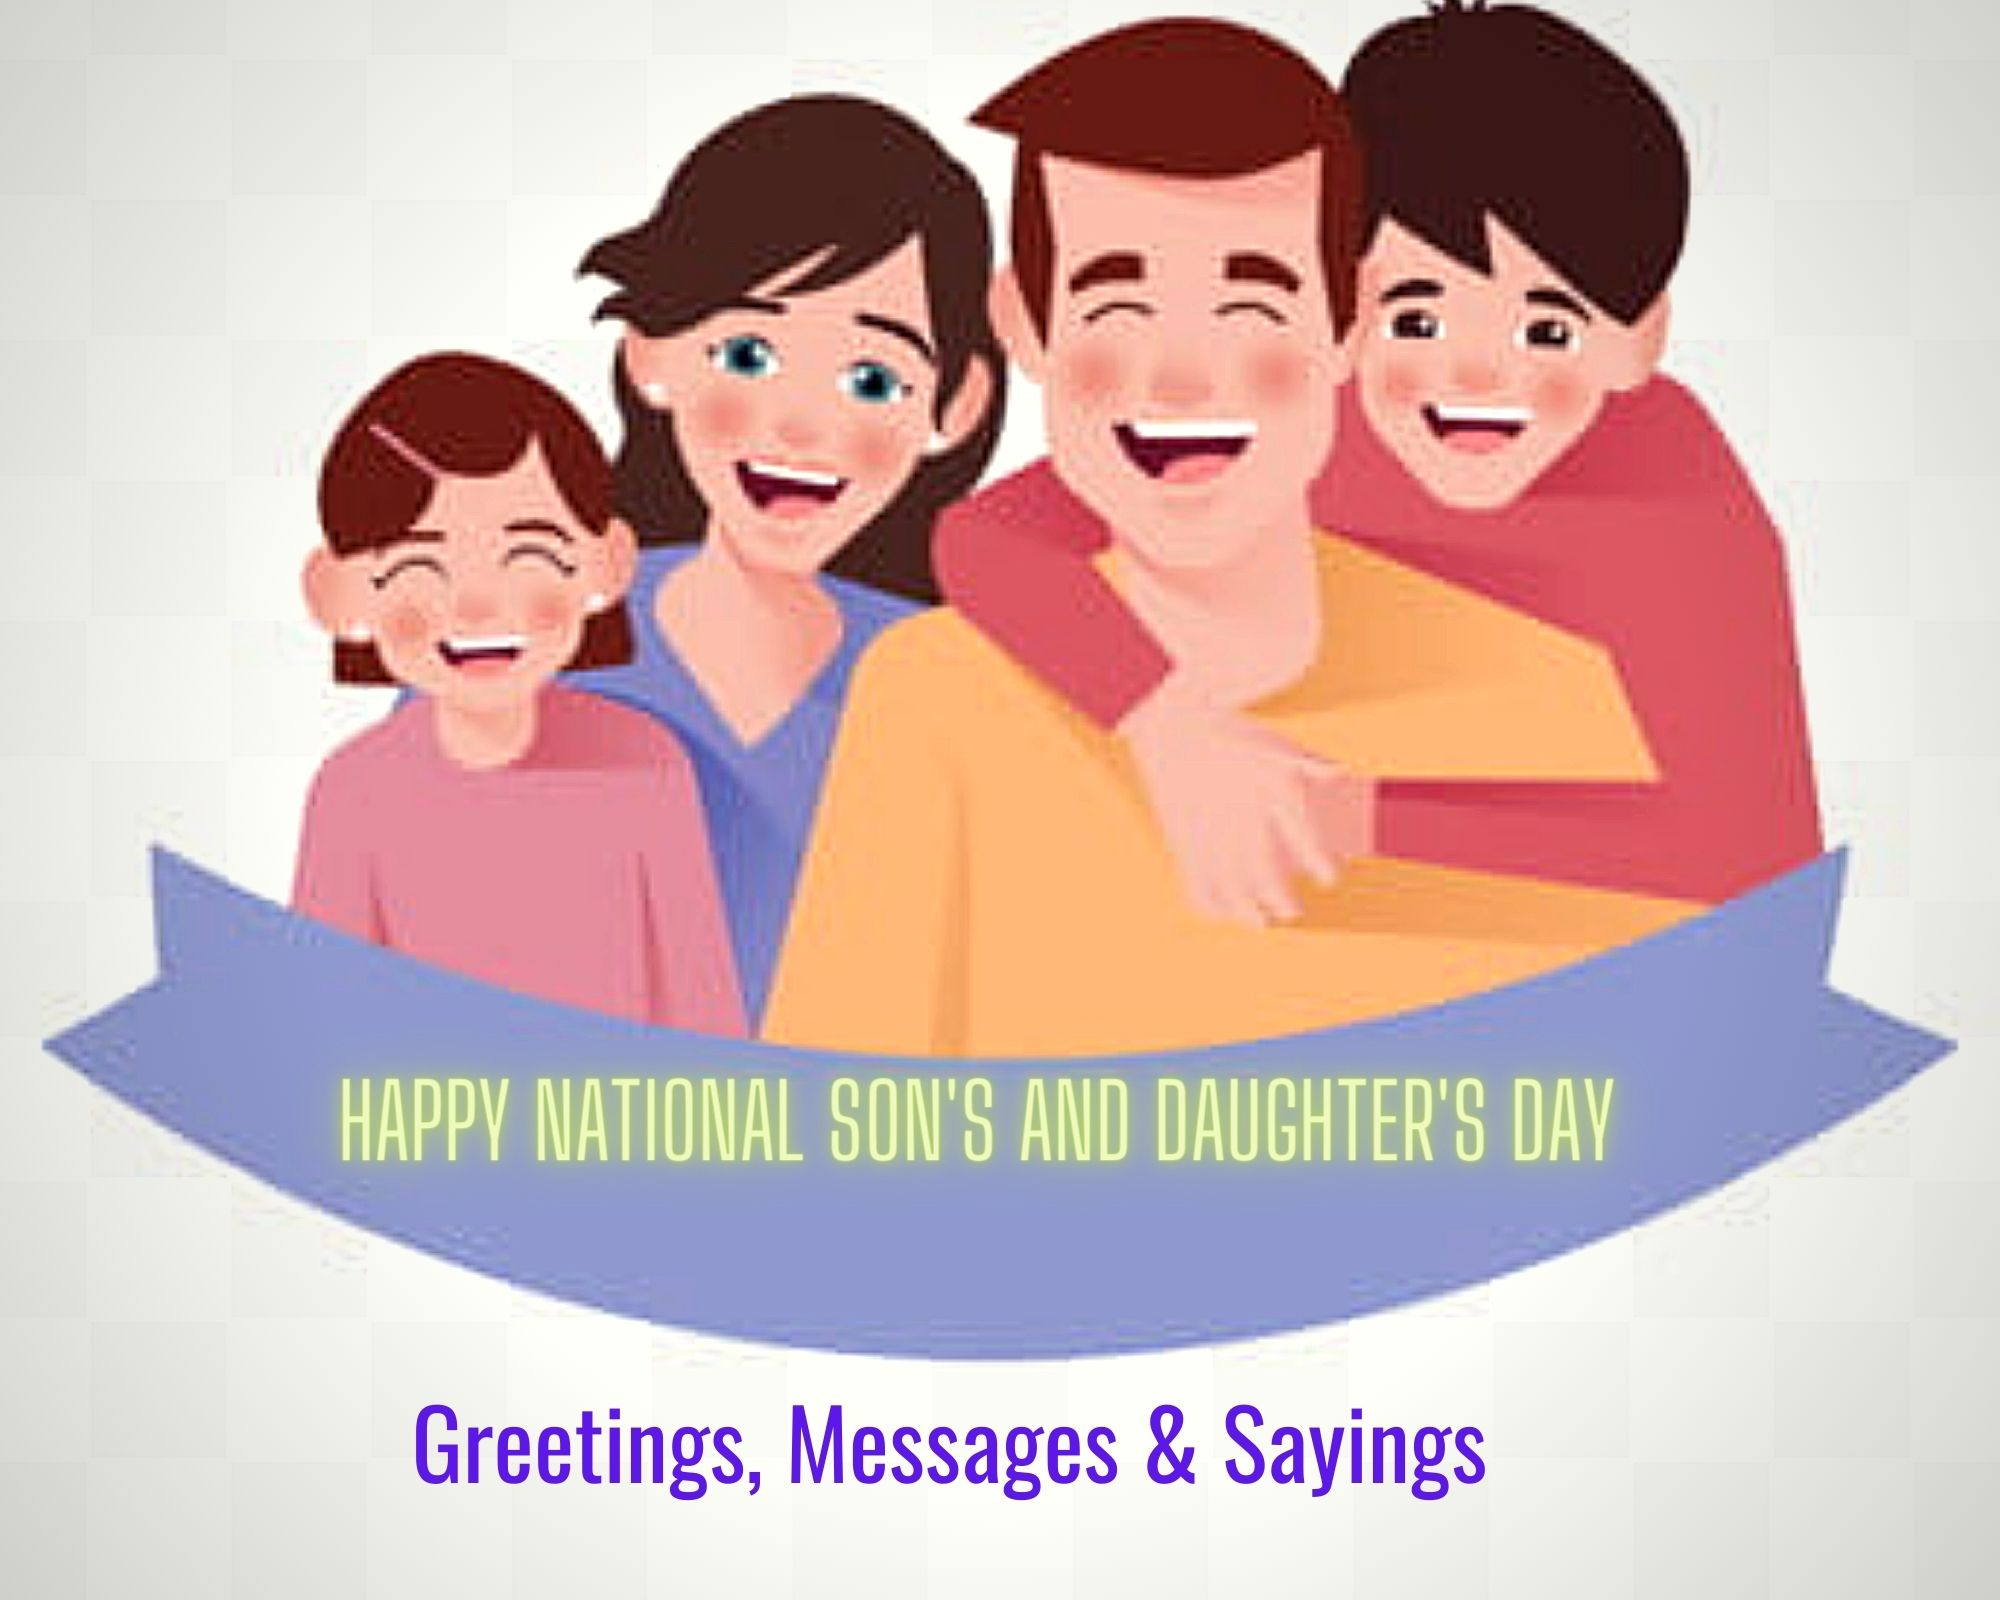 National Son's And Daughter's Day Greetings, Messages & Sayings